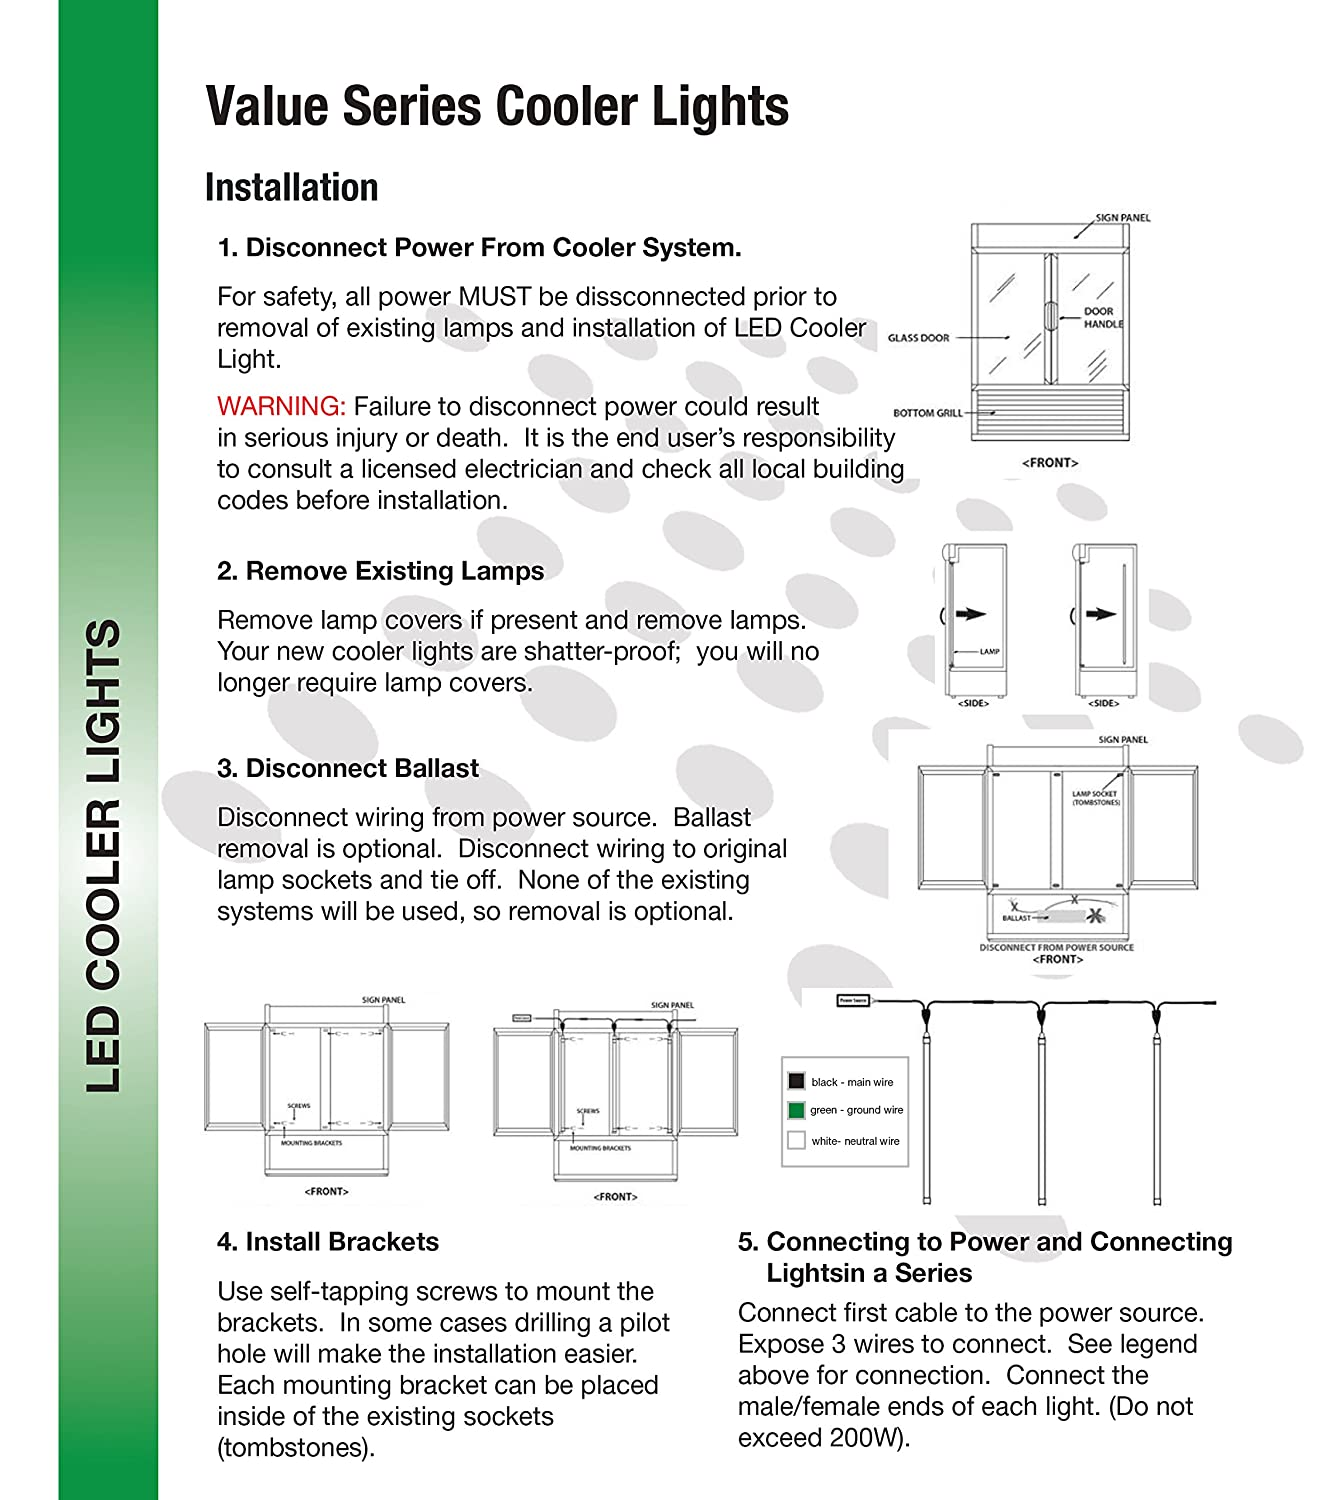 Beyond Led Bltcl28w69in5k 28w 3000 Lm 69 Value Series Cooler Wiring Parallel Vs Light Etldlc Qualified Input Voltage 100 277v Operating Temperature 4 104f